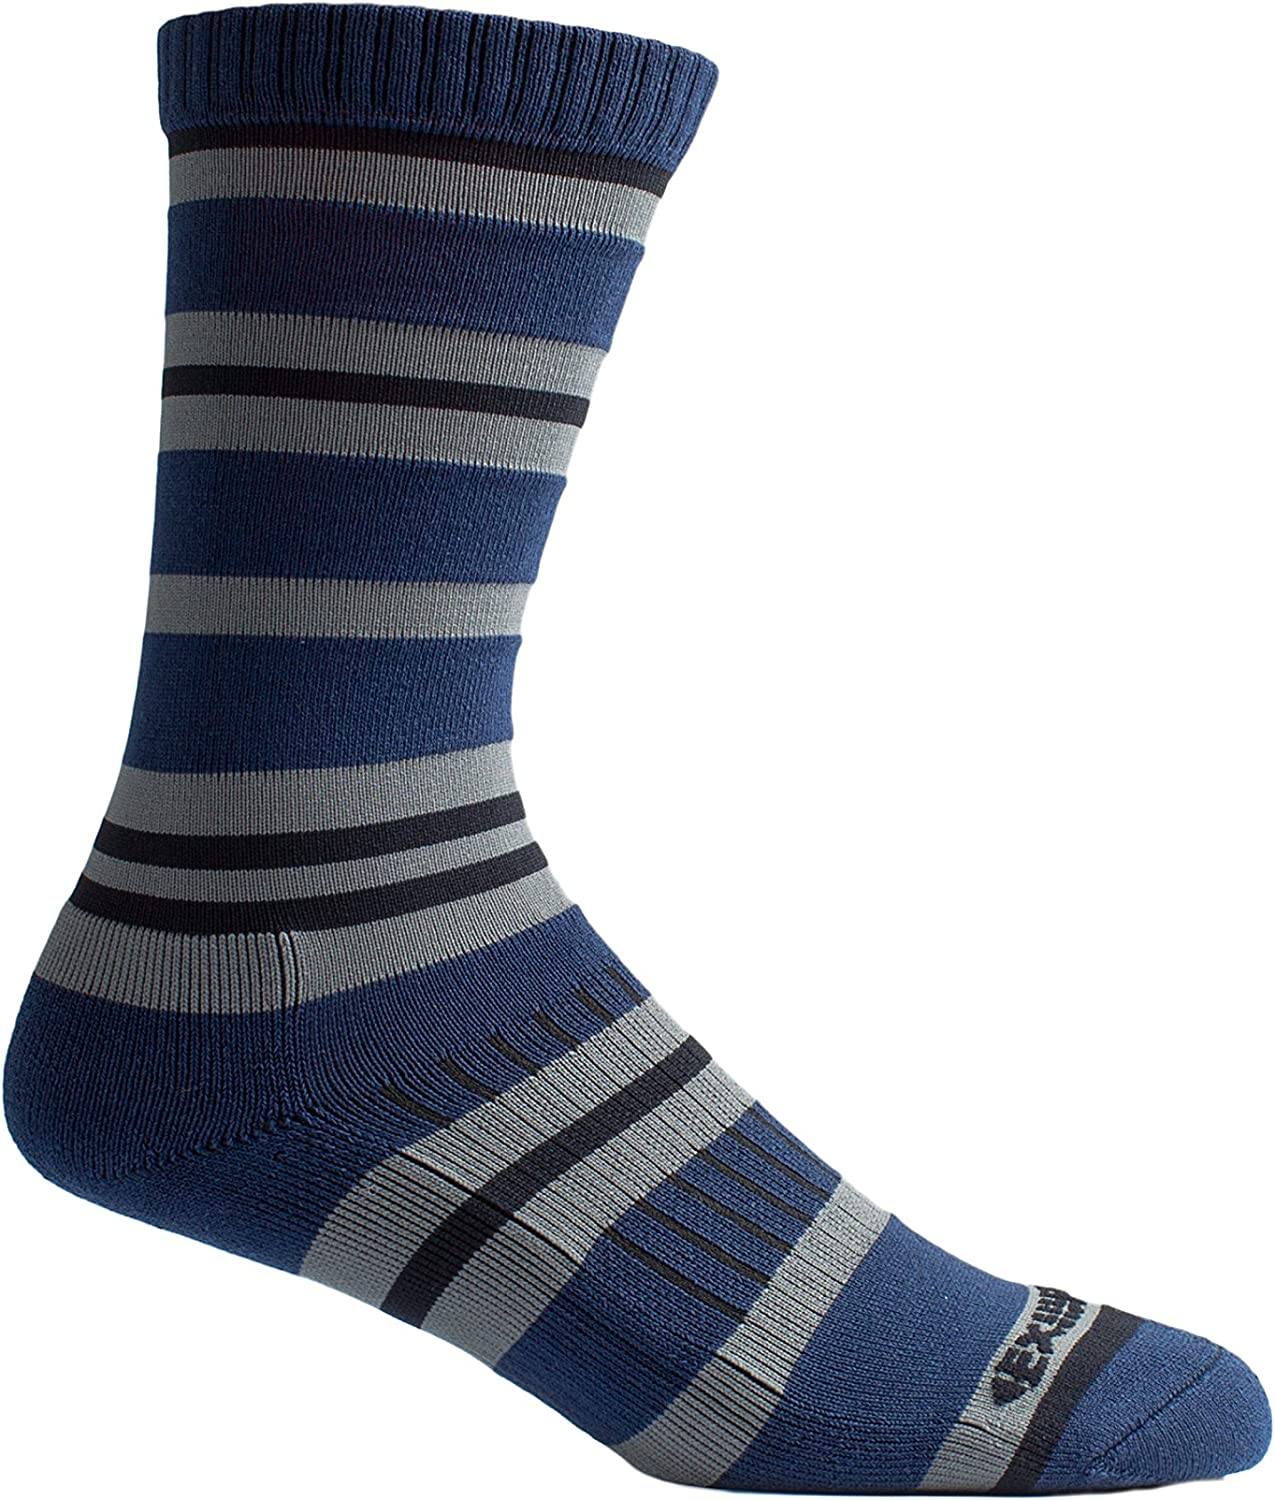 ExOfficio BugsAway Sol Cool Crew Sock, Navy Stripe, Medium/Large